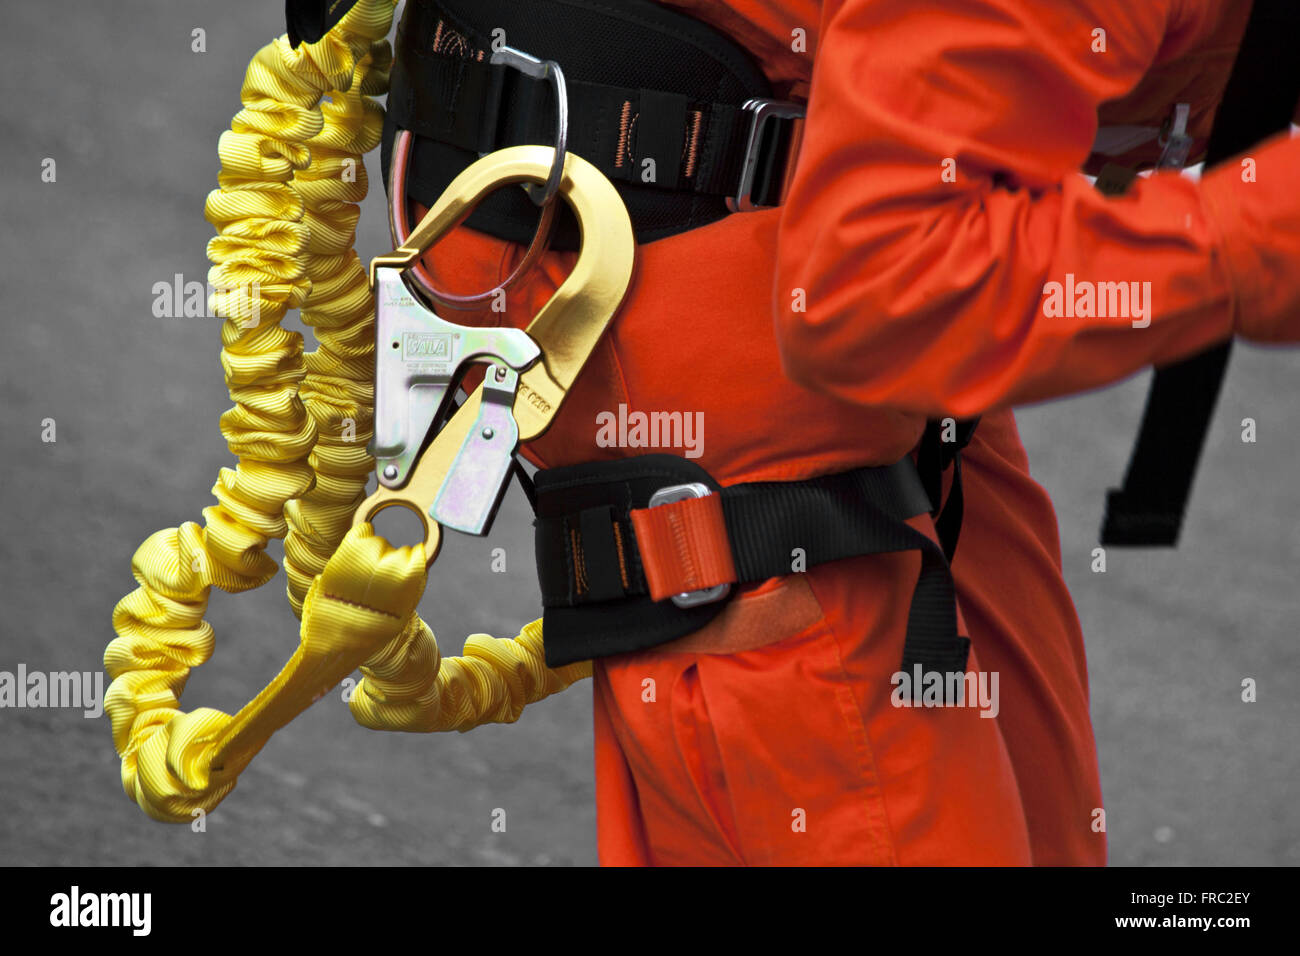 Workman with safety equipment - Stock Image